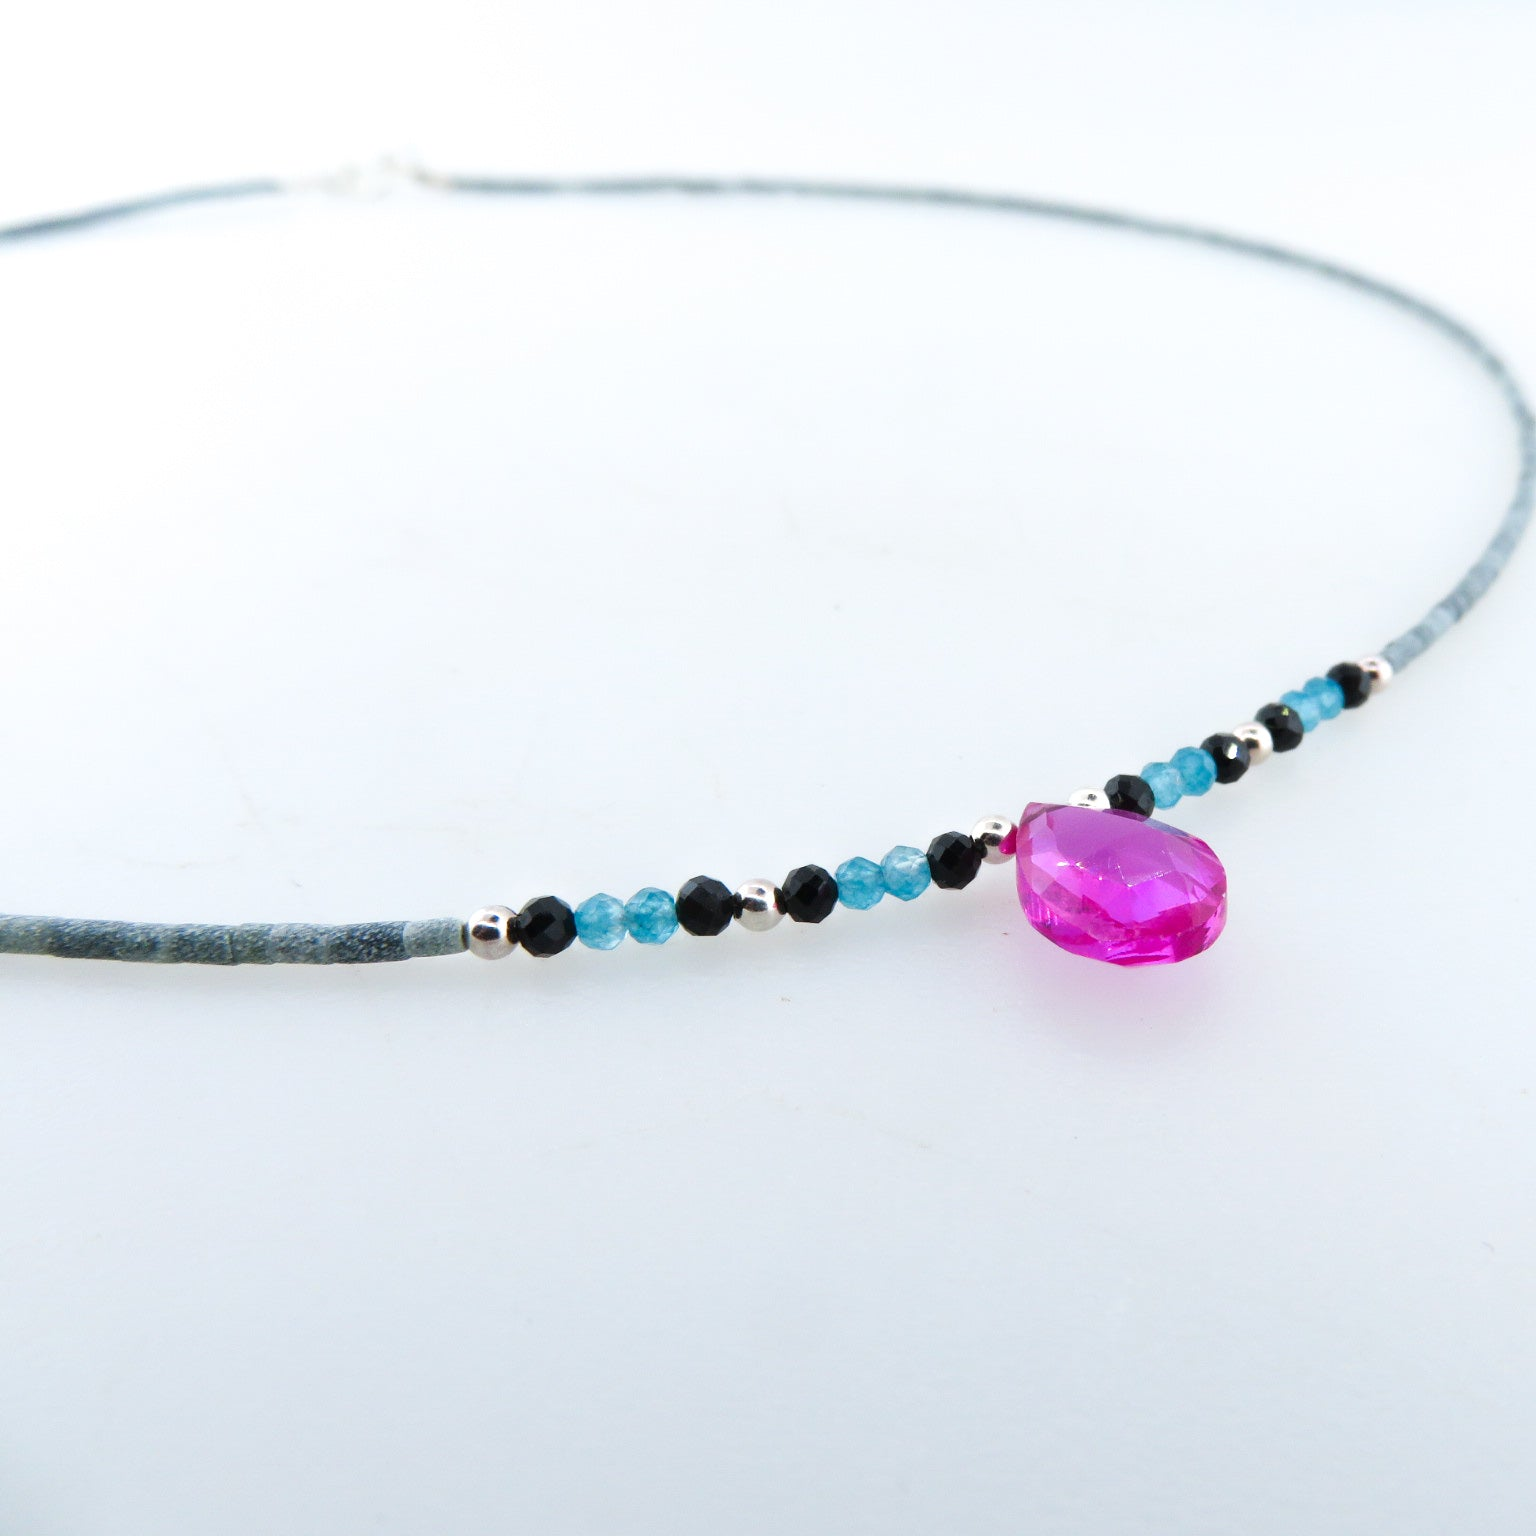 Jade Necklace with Pink Quartz, Blue Apatite, Black Onyx and Silver Beads